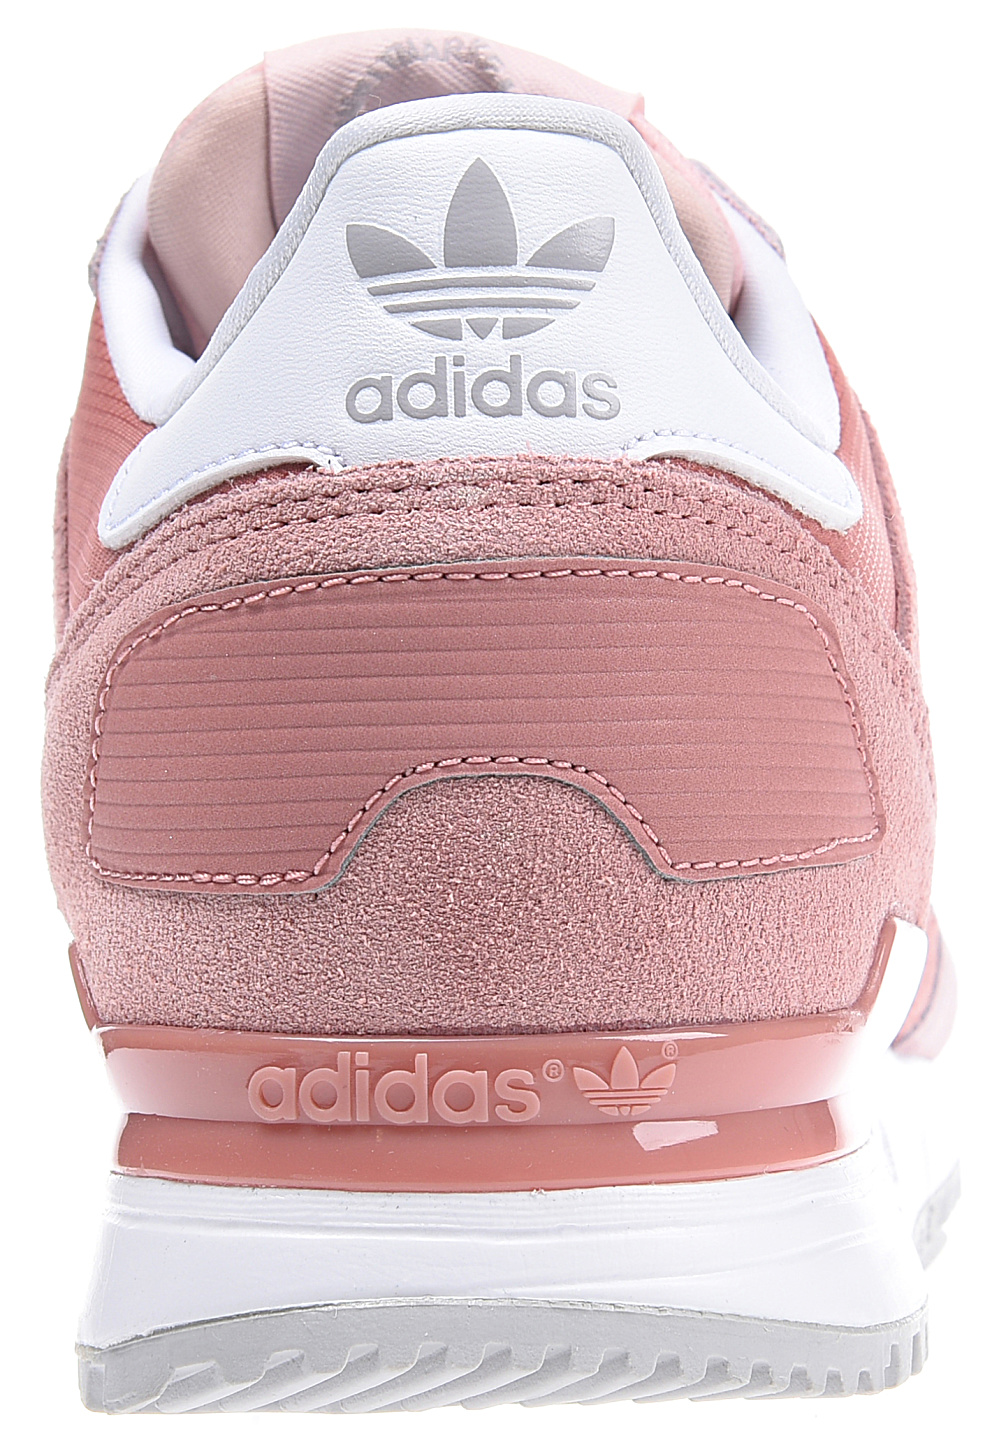 2fbf63deb4273 Next. -30%. This product is currently out of stock. ADIDAS ORIGINALS. ZX 700  - Sneakers for Women